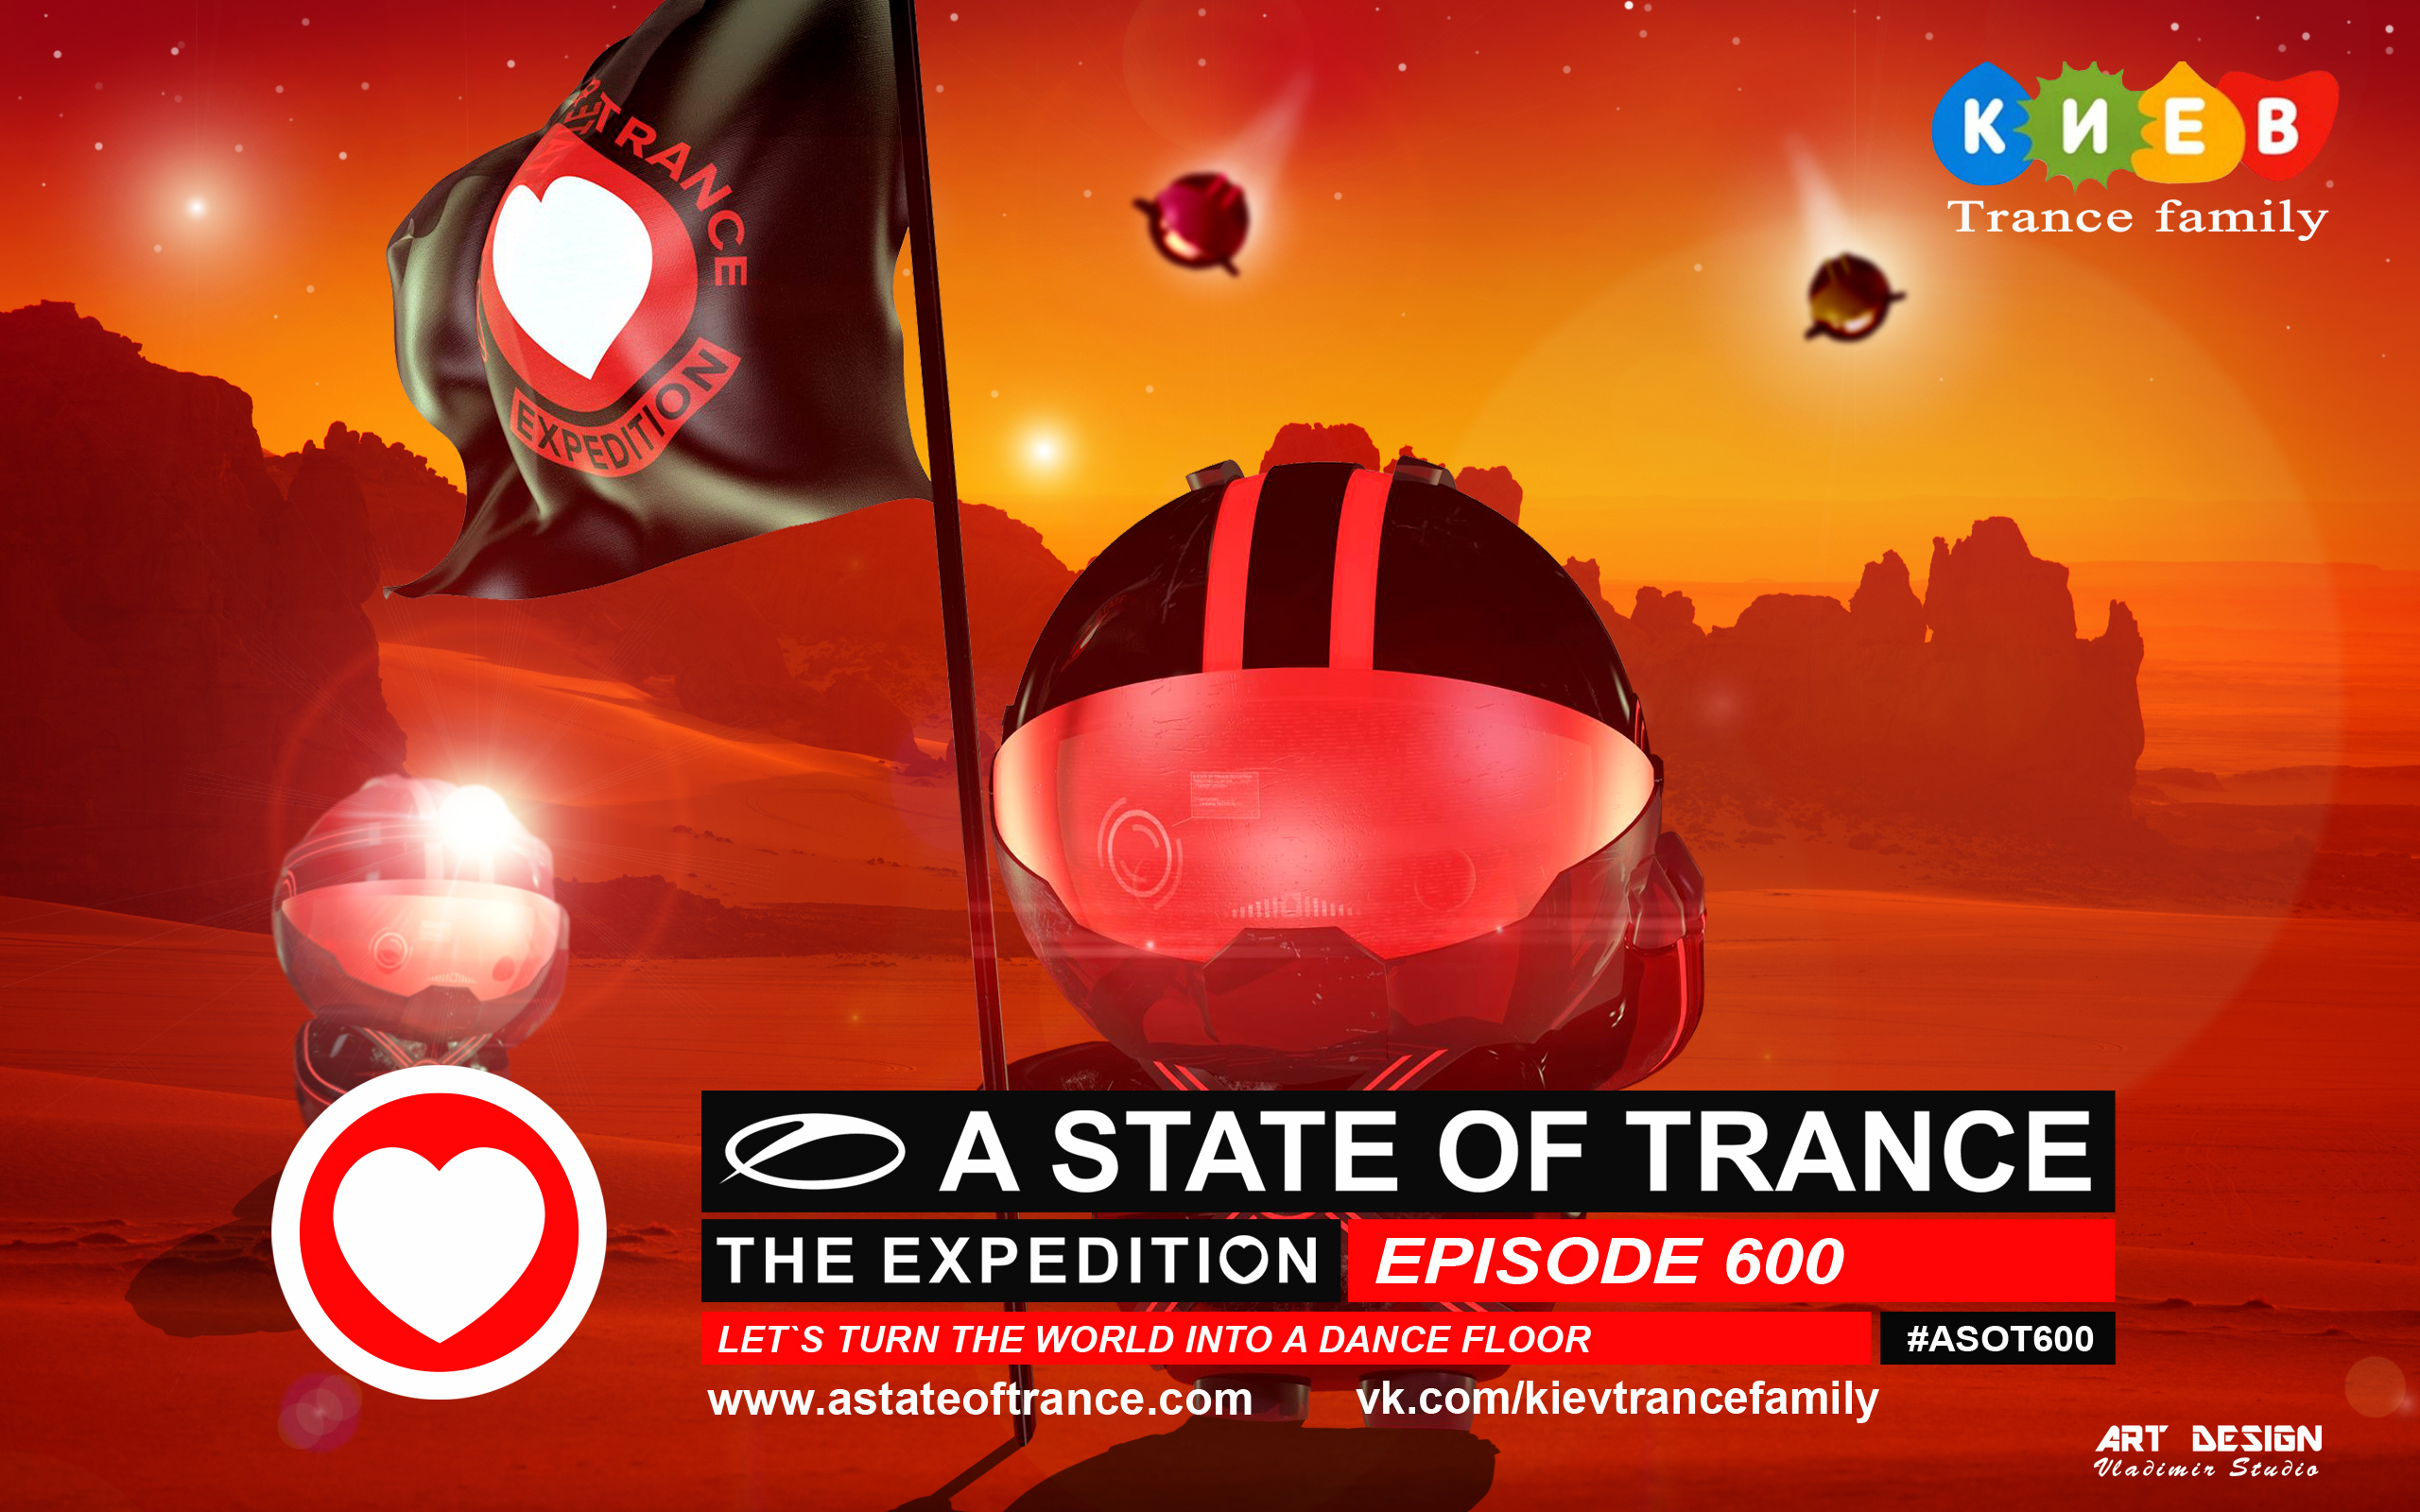 State Of Trance Wallpapers a state of trance 600 2560x1600